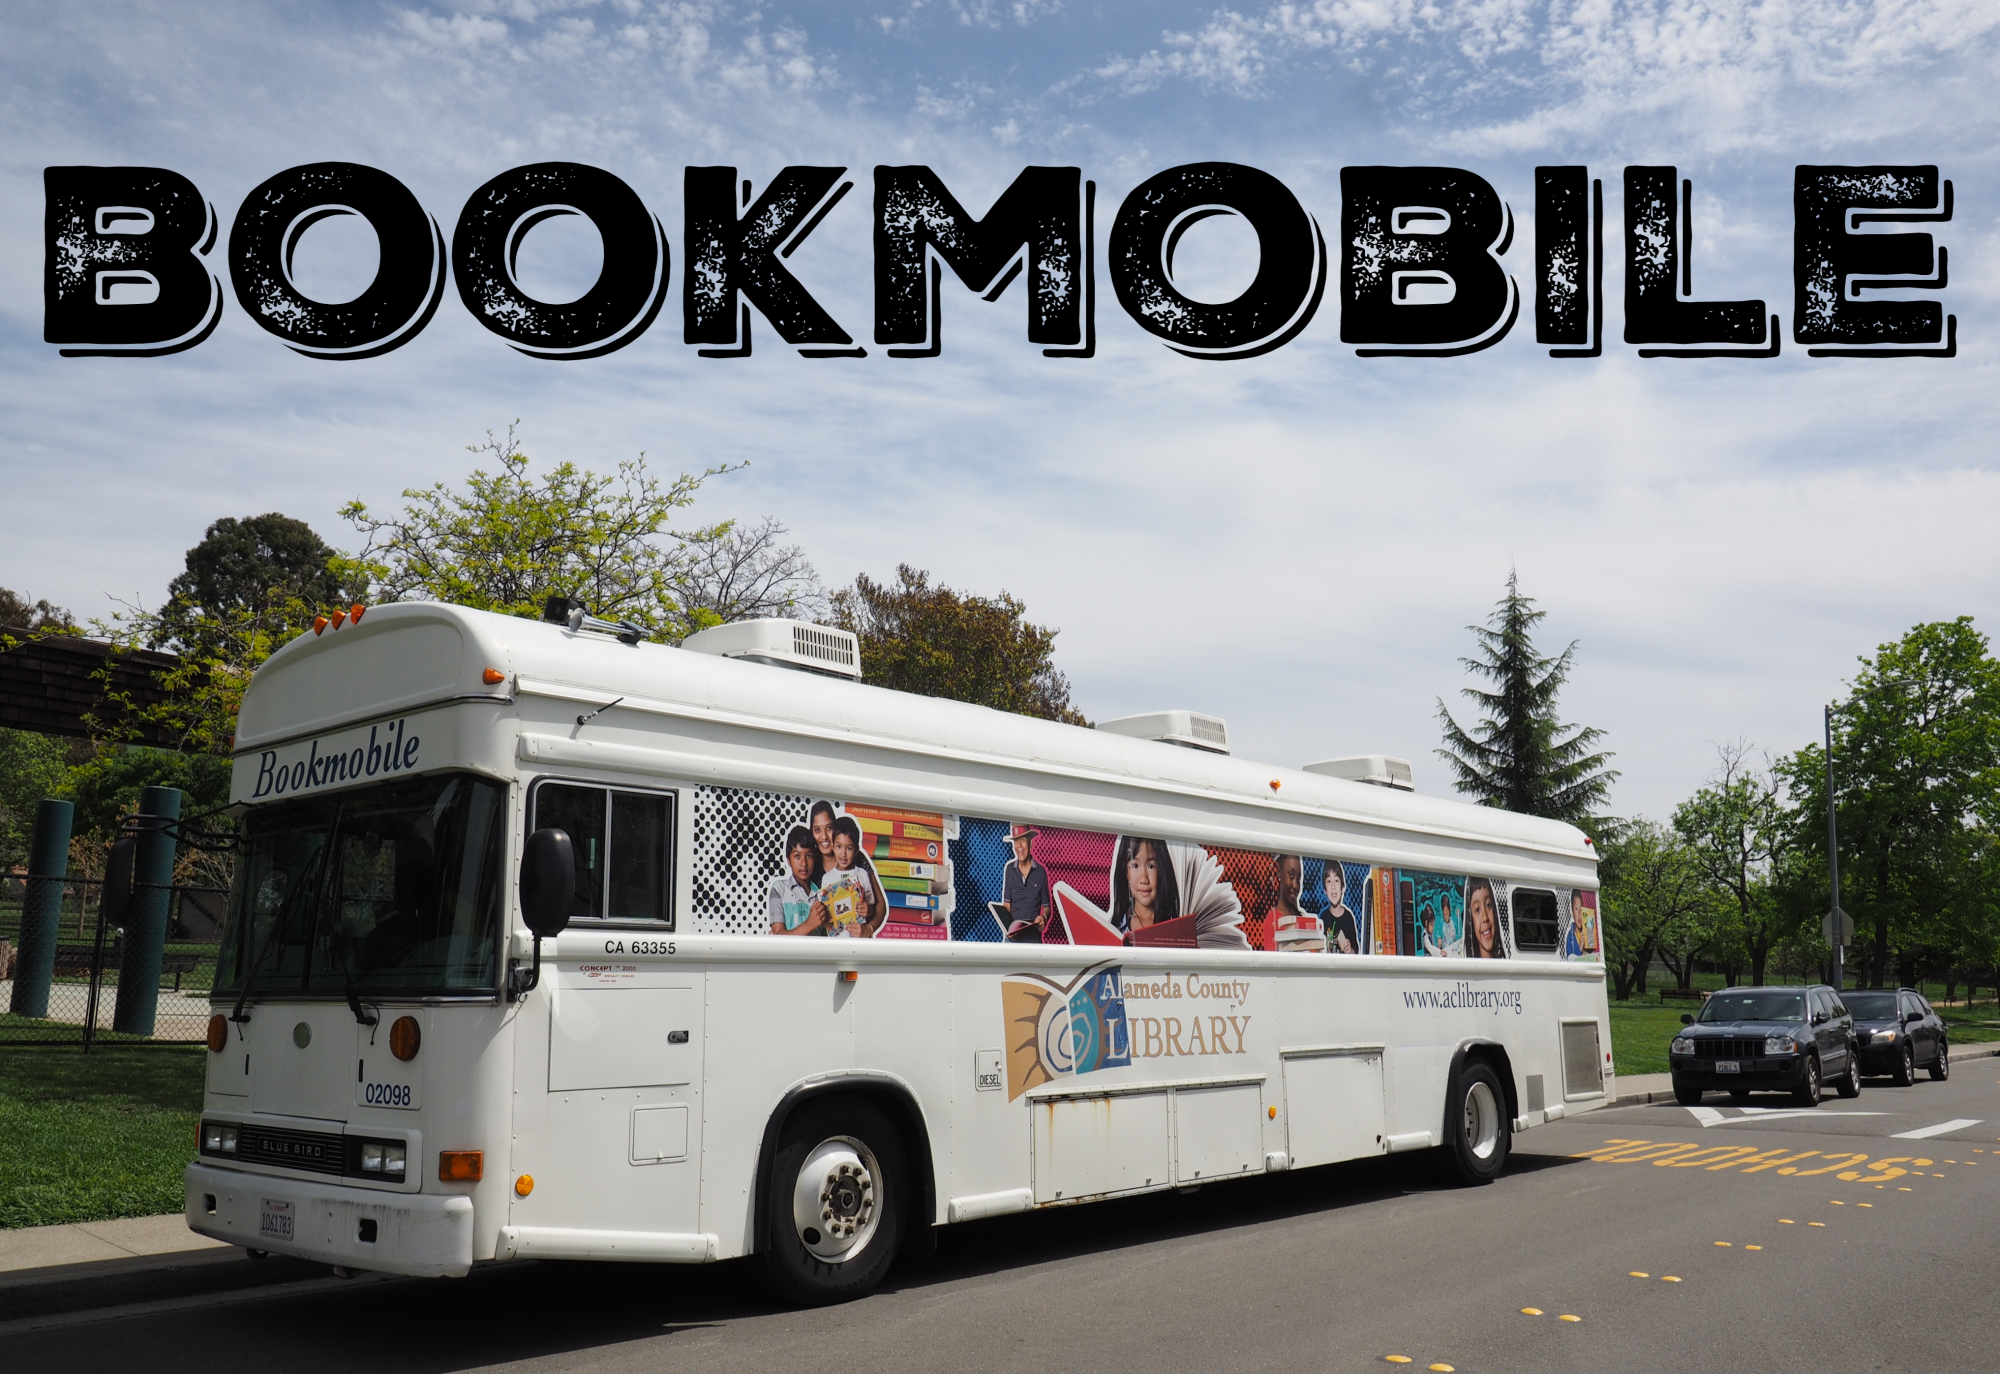 Cherryland School - bookmobile stop